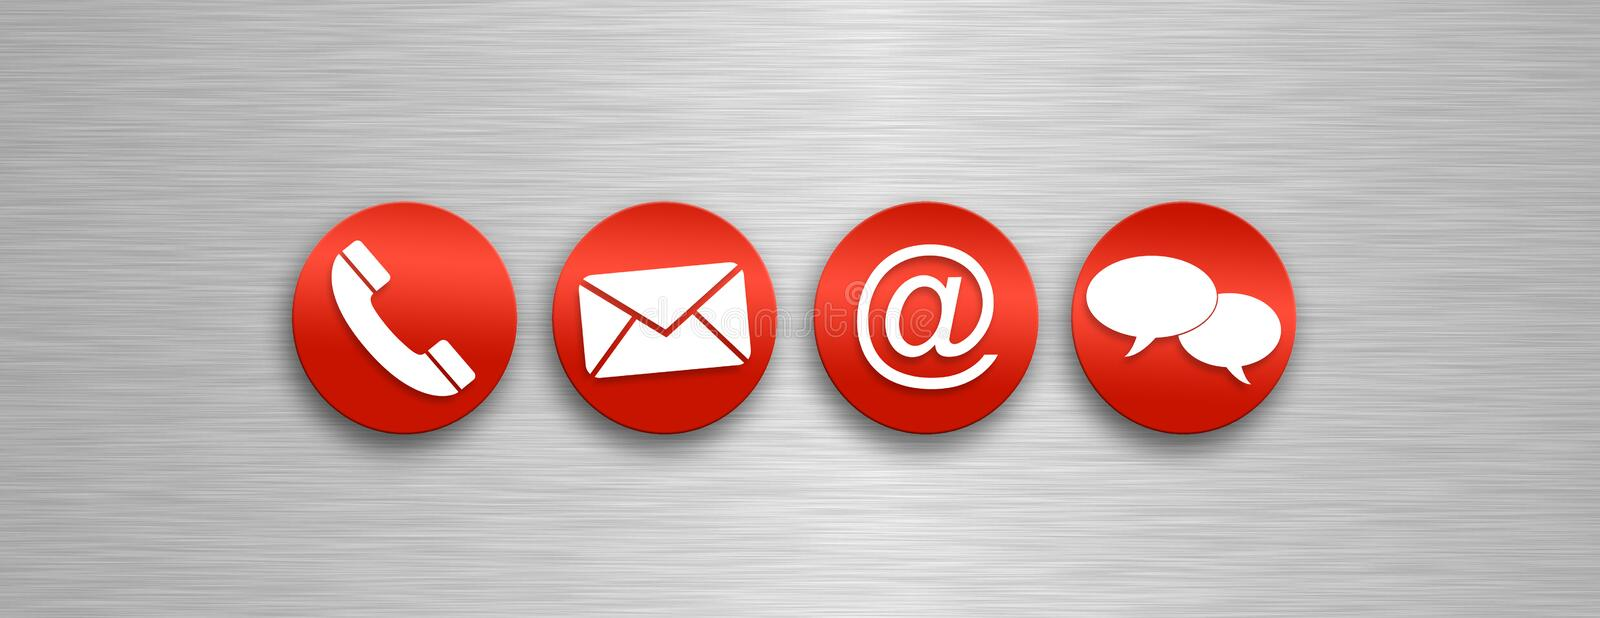 Contact and communications icons royalty free stock photos